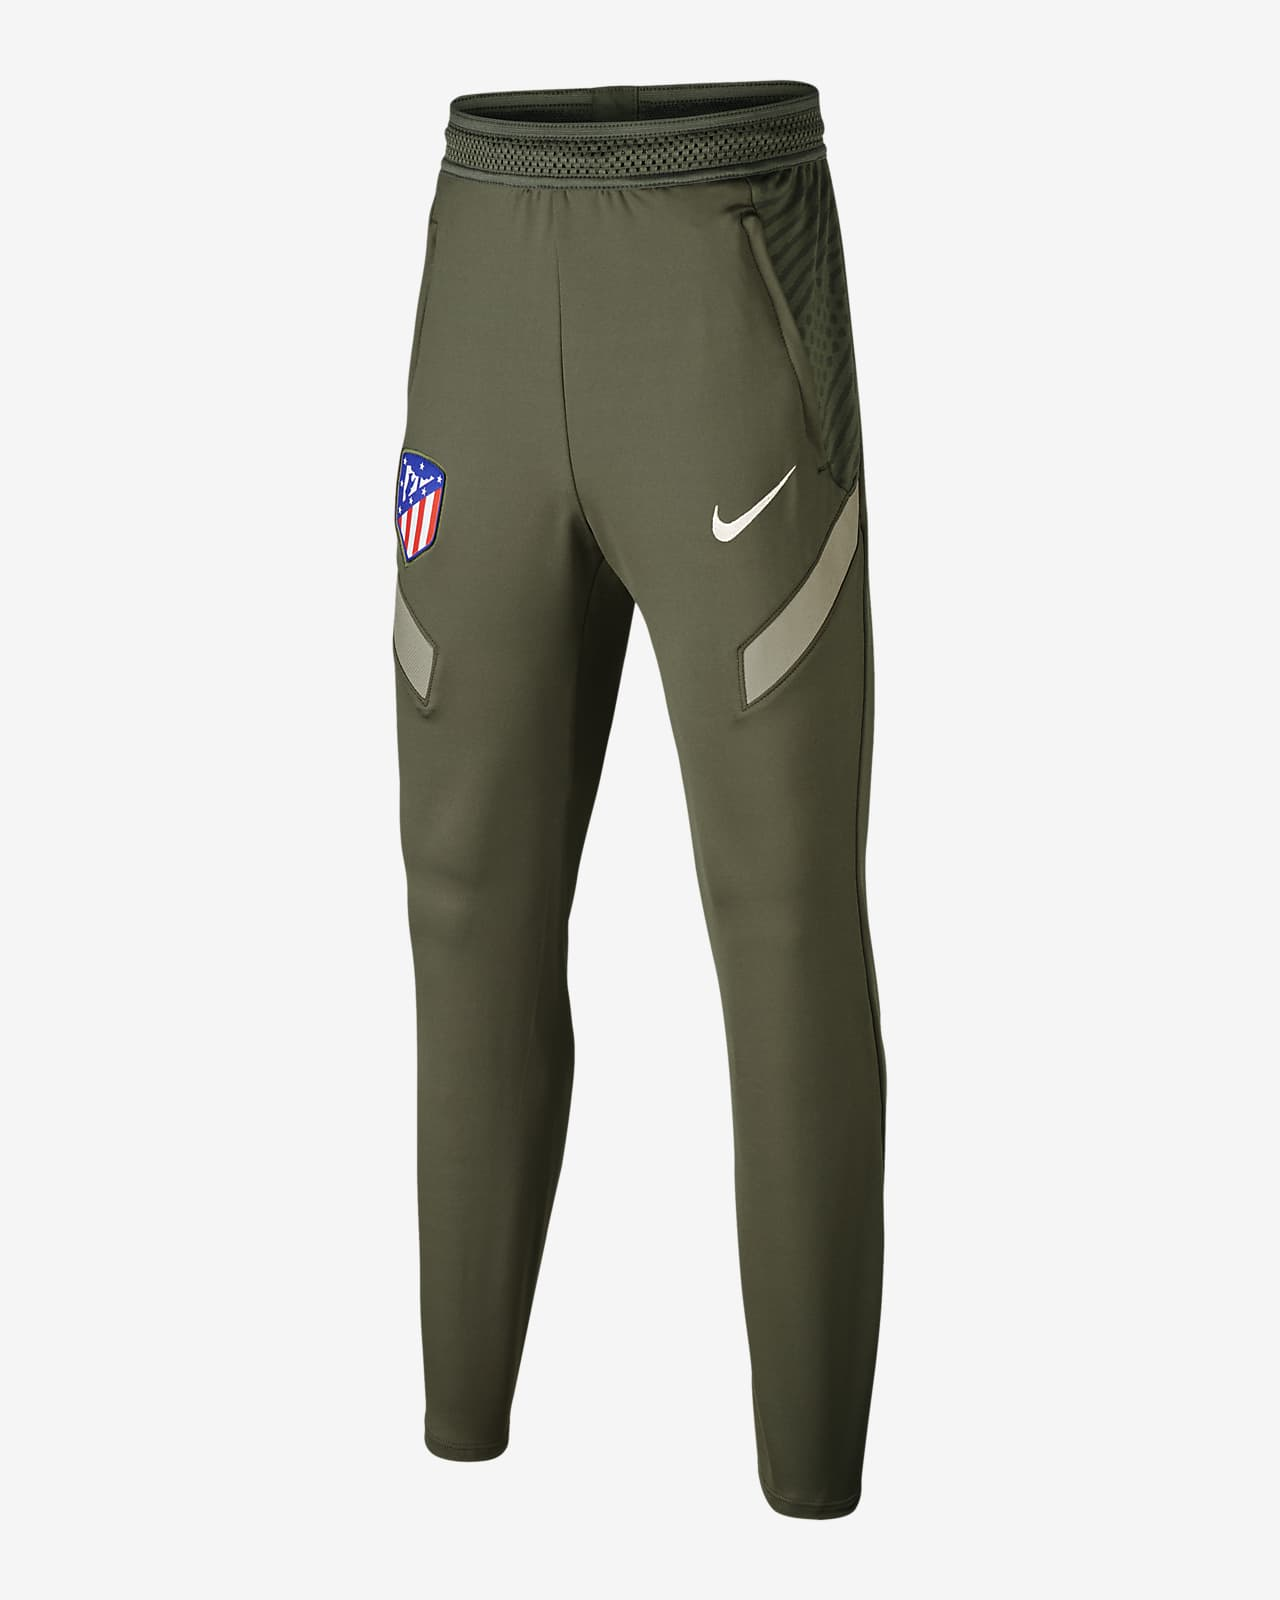 Atlético de Madrid Strike Older Kids' Football Pants